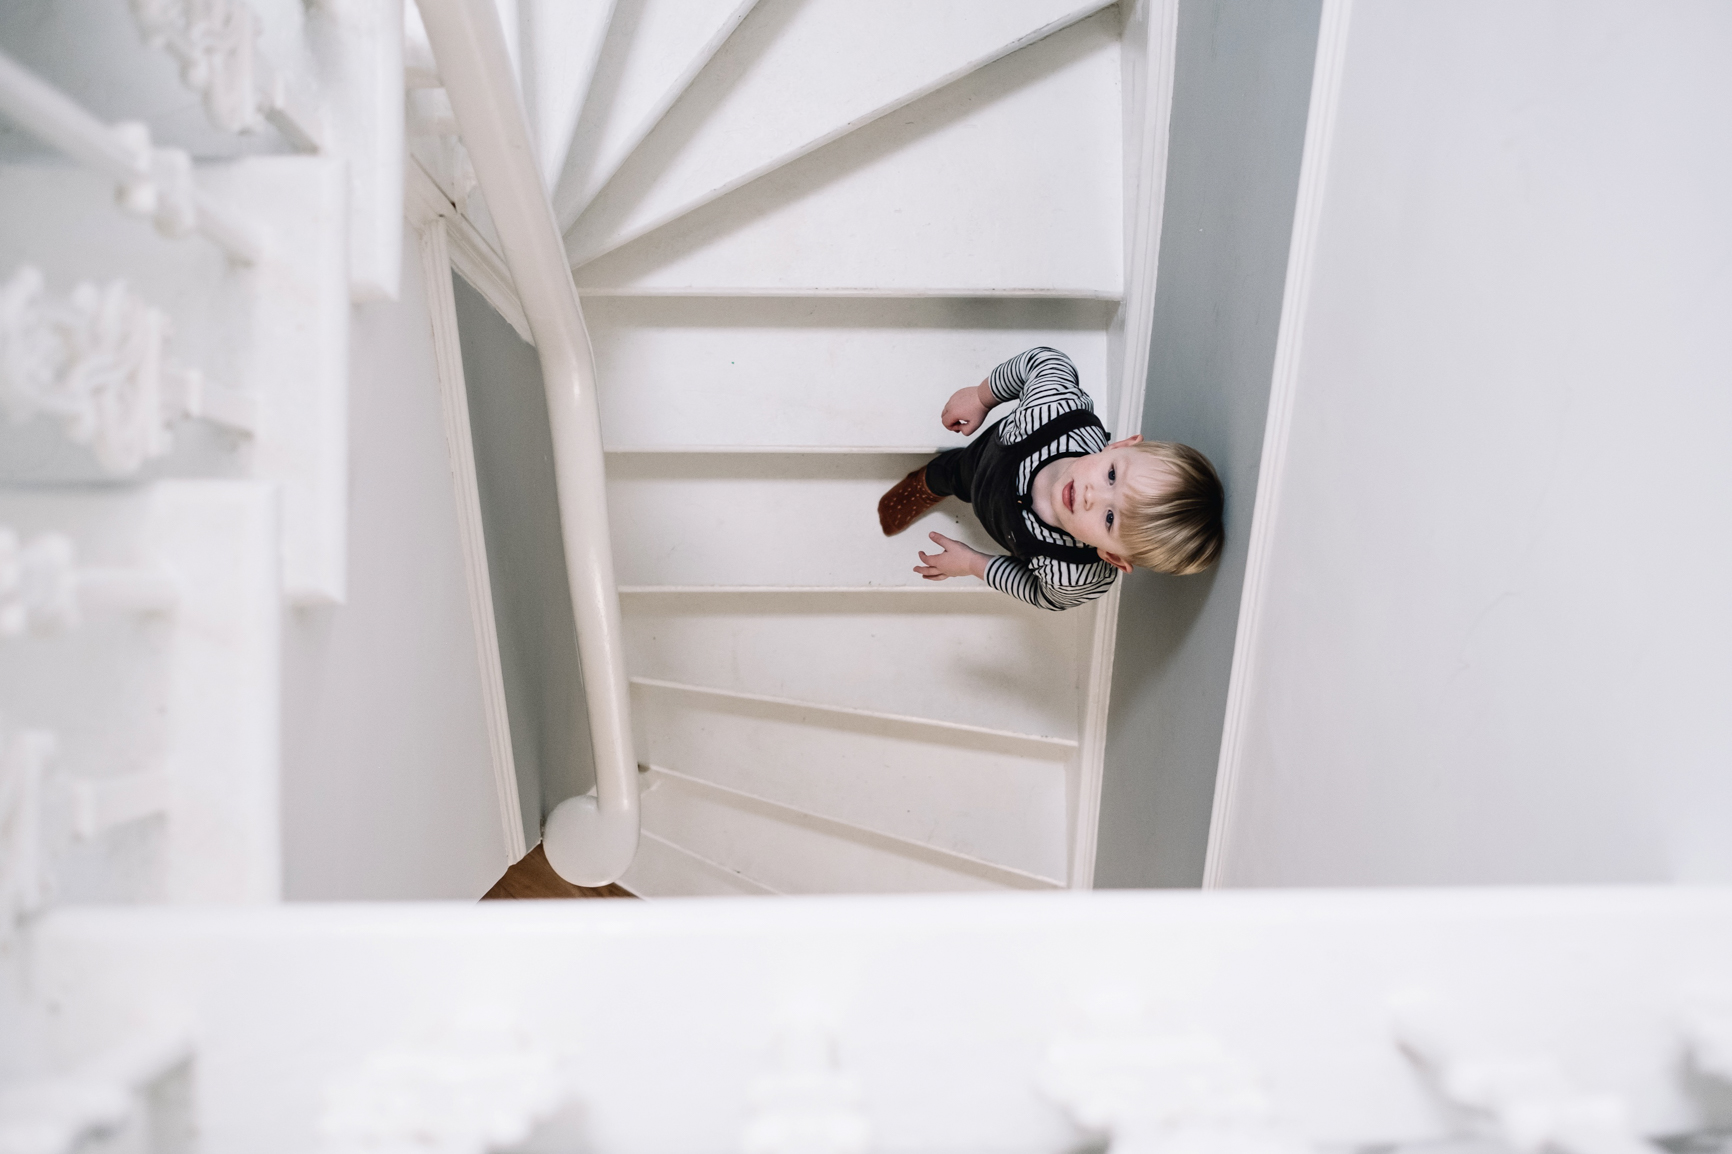 A young boy is walking down a spiral stair case.